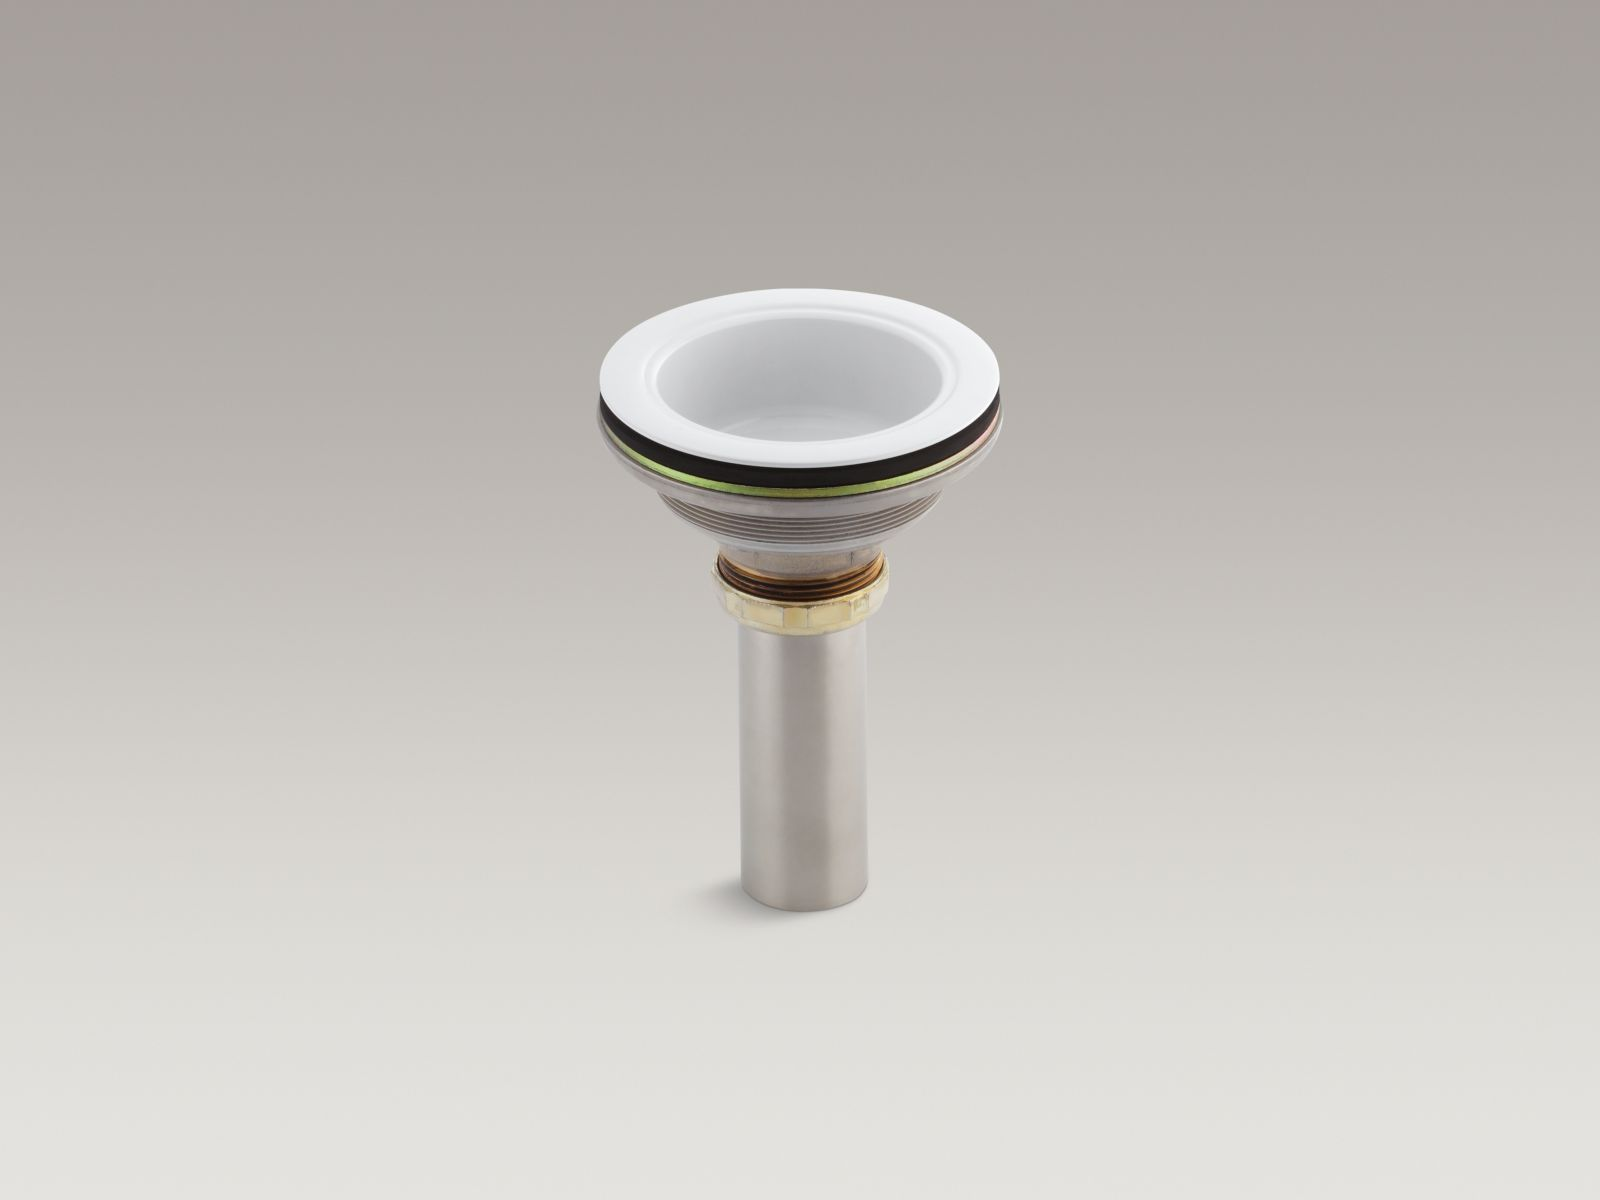 Kohler K-8804-0 Body with Tailpiece from Duostrainer Collection, White